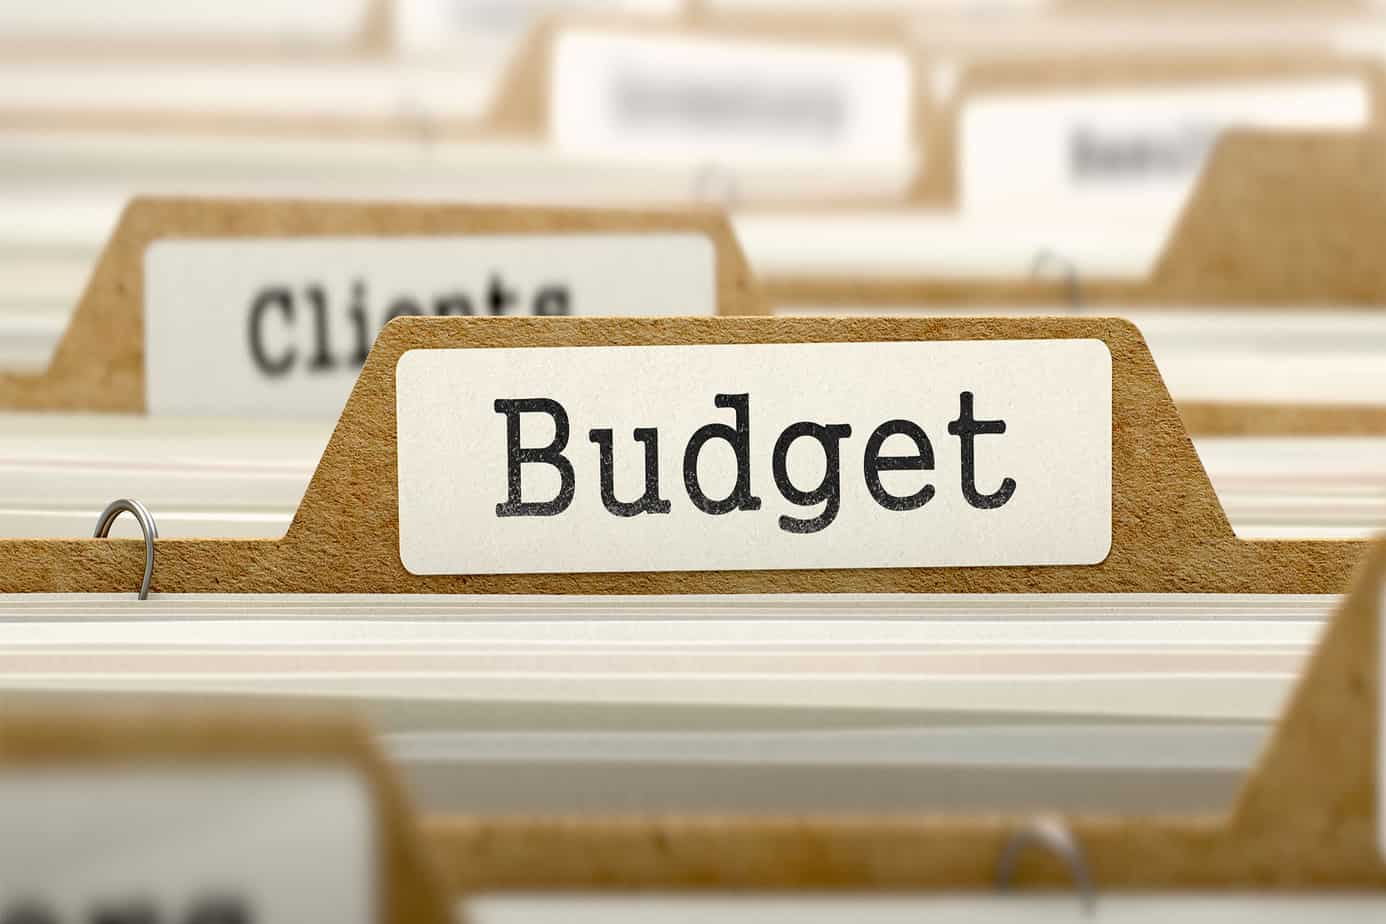 Easy Budget Fixes to Make Today